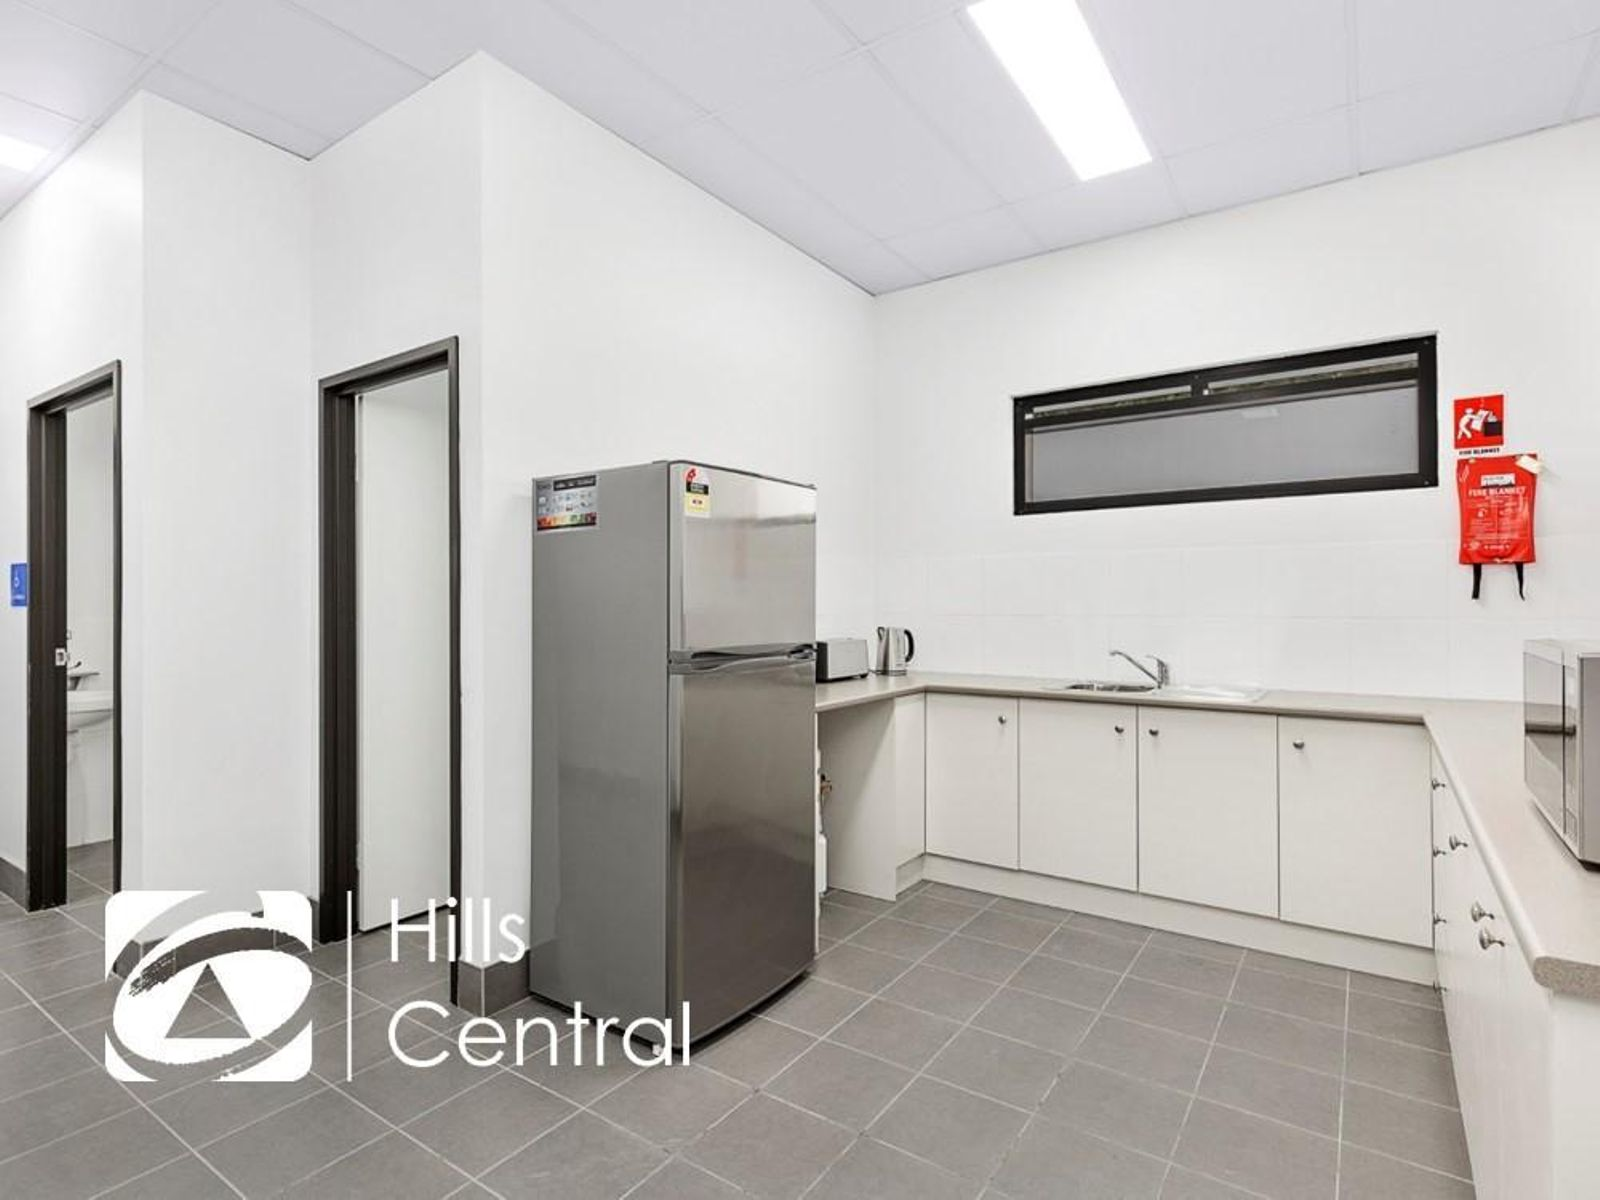 8/242 New Line Road, Dural, NSW 2158